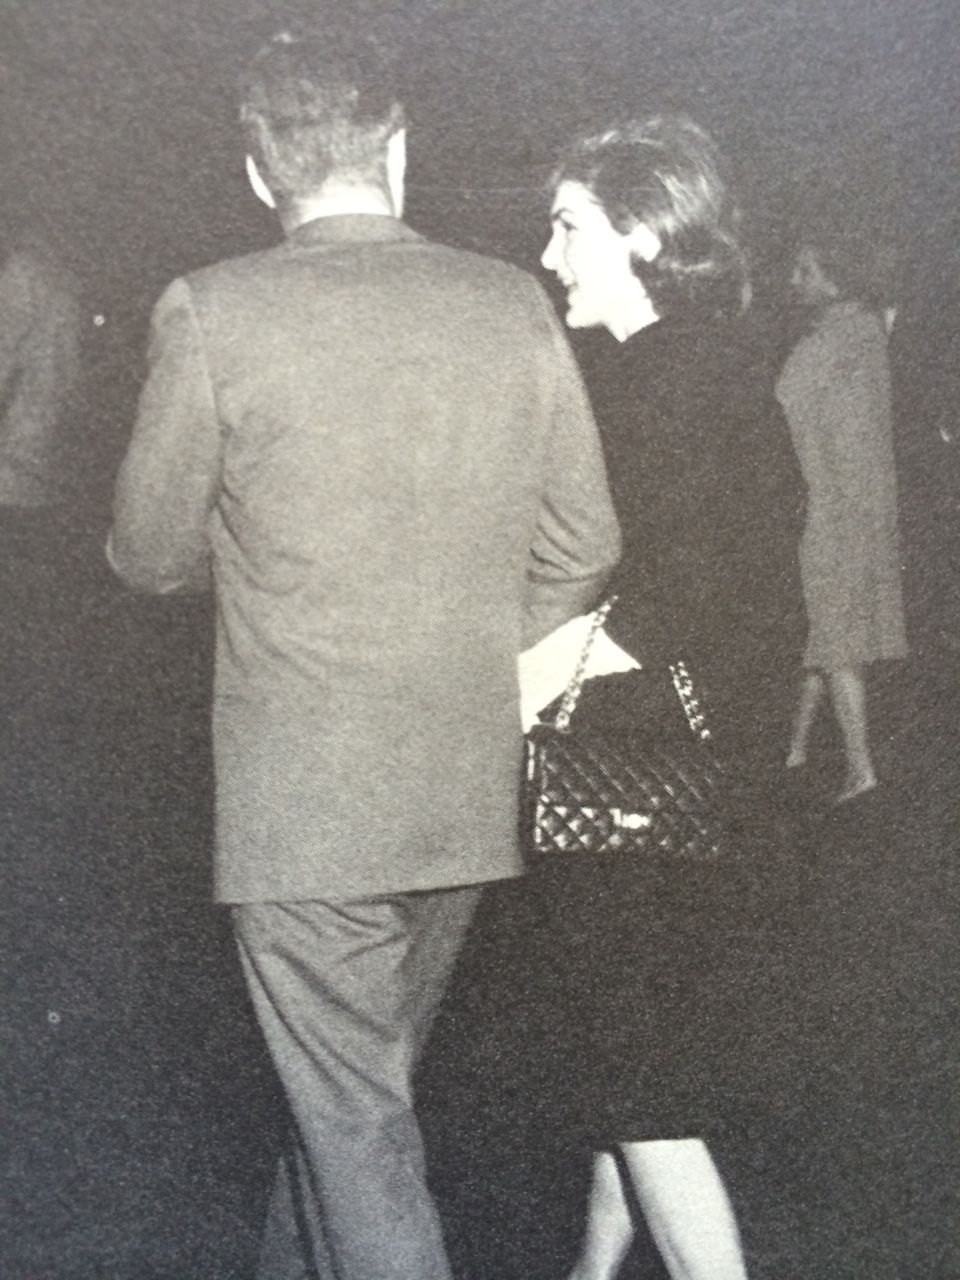 President Kennedy walks with his wife Jacqueline from her return from India.